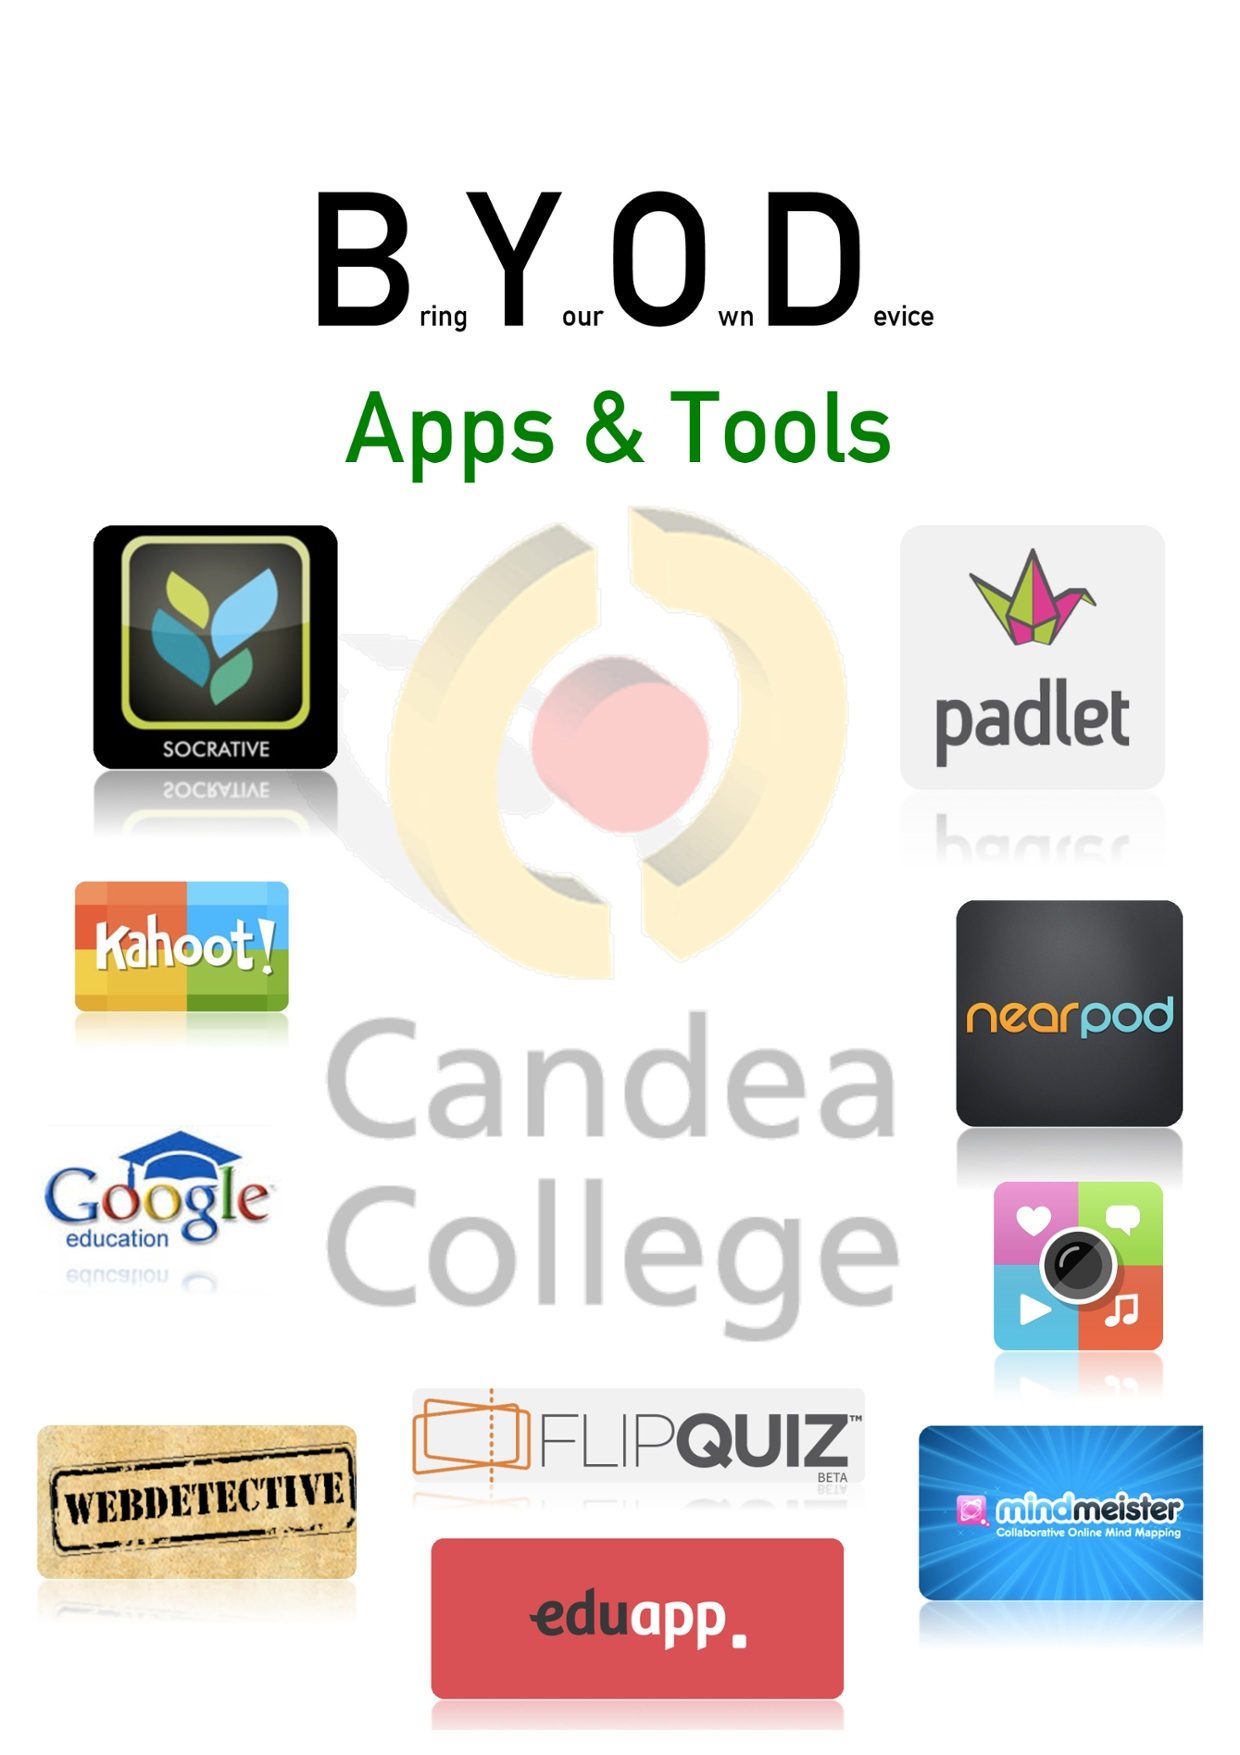 BYOD Candea College: Apps & Tools